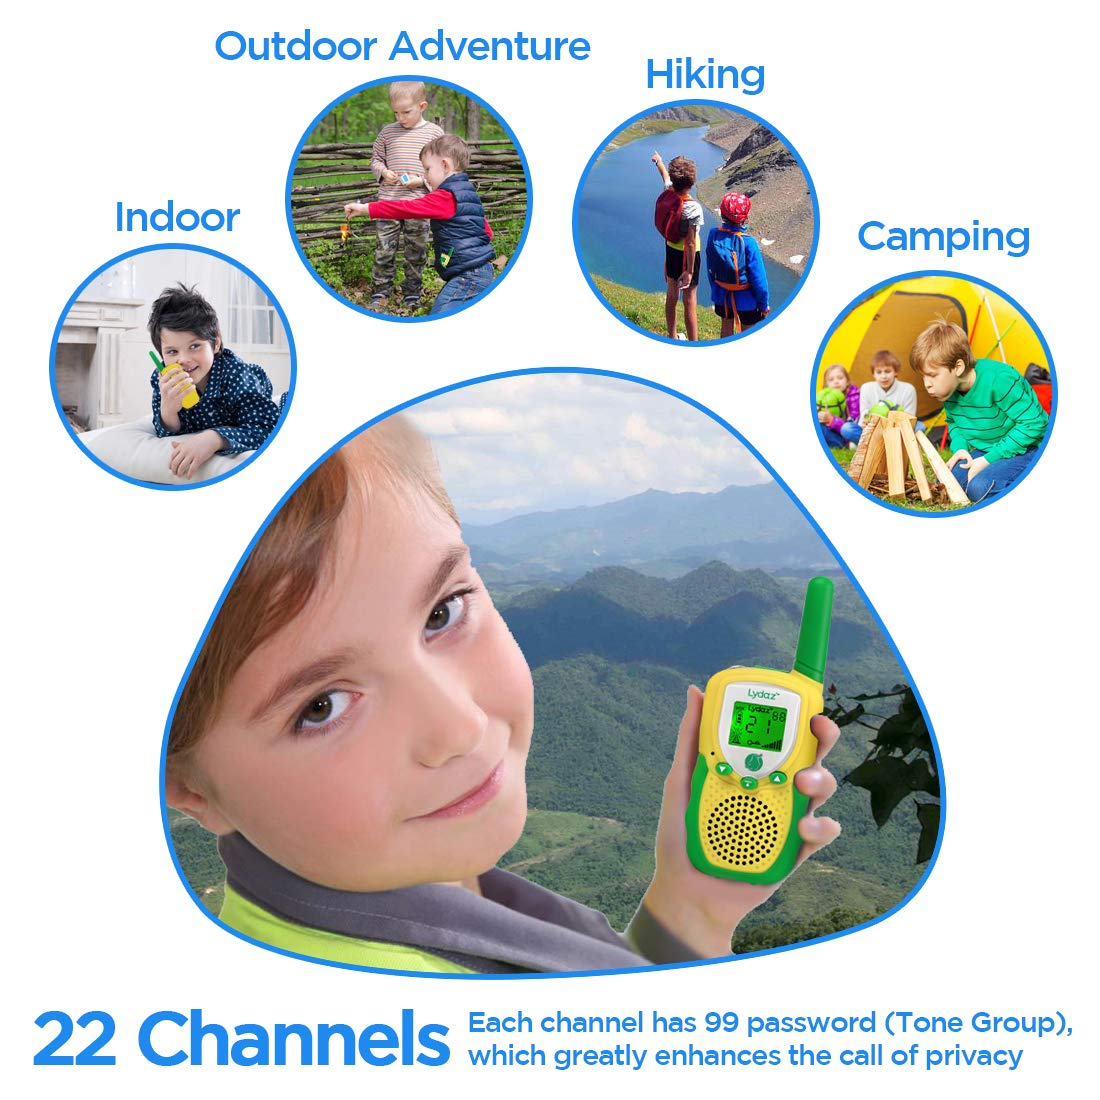 Lydaz Walkie Talkies for Kids with 2'' Backlit LCD Flashlight - 22 Channels 2 Way Radios 3 Miles Range Long Distance - Toys for Boys Girls Outdoor Adventures Hiking Camping - 2 Pack by Lydaz (Image #5)